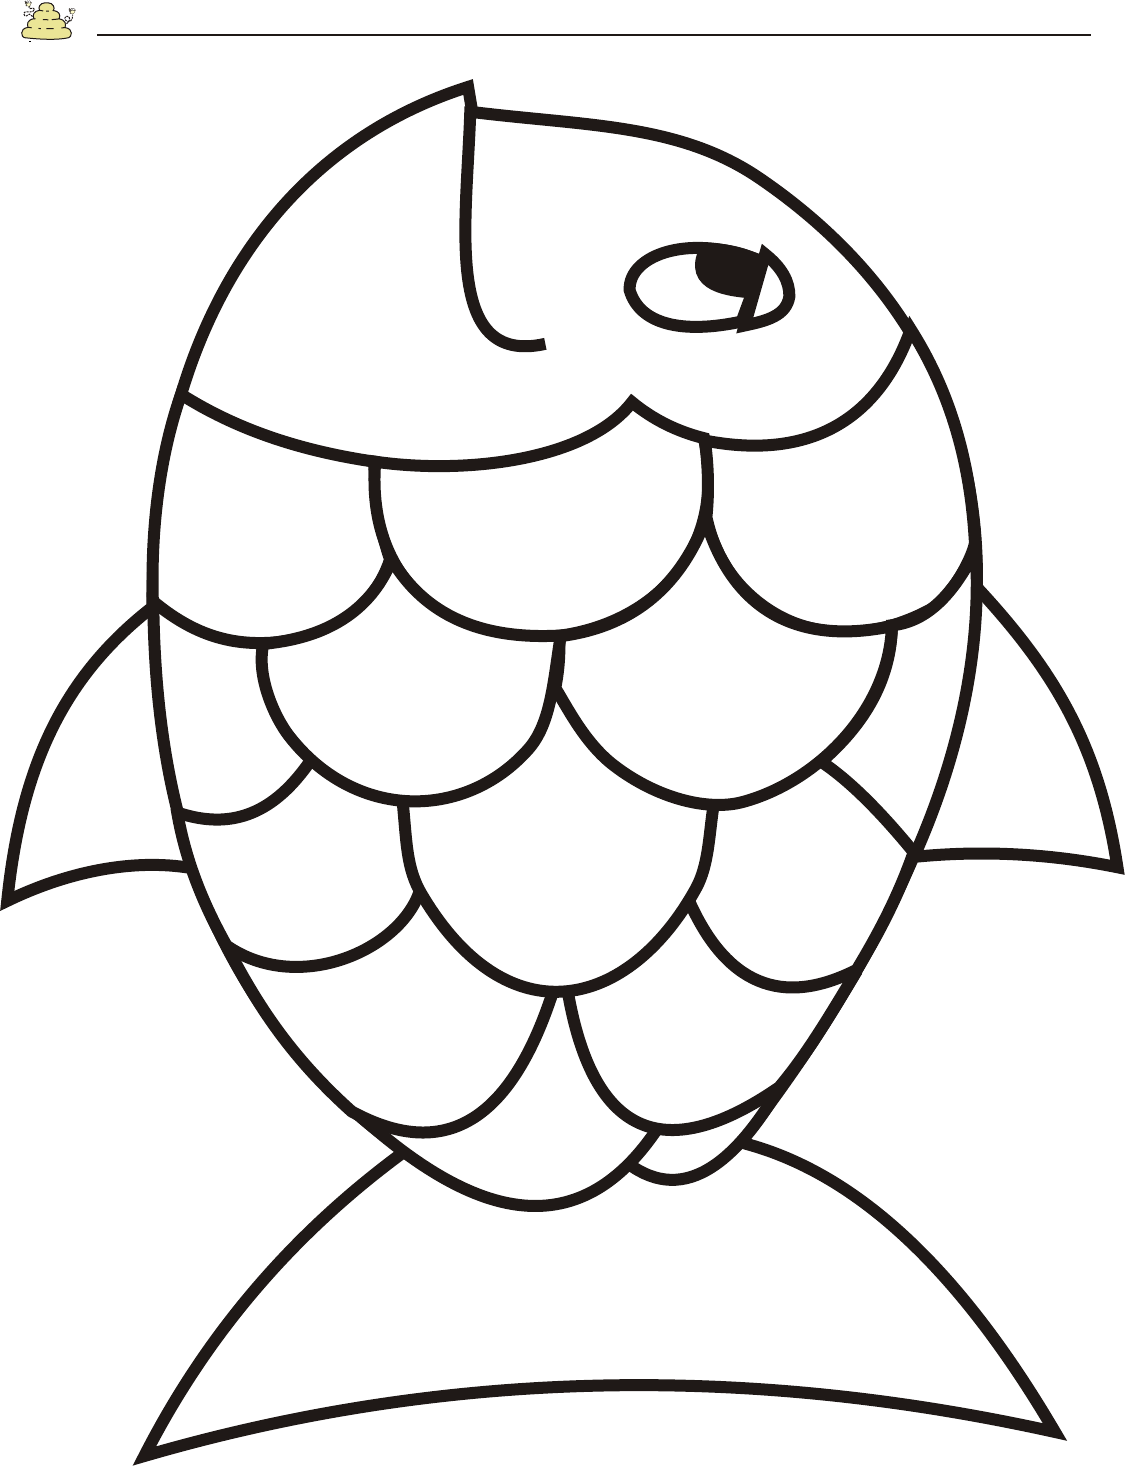 Free rainbow fish template pdf 2 page s page 2 for Printable fish coloring pages